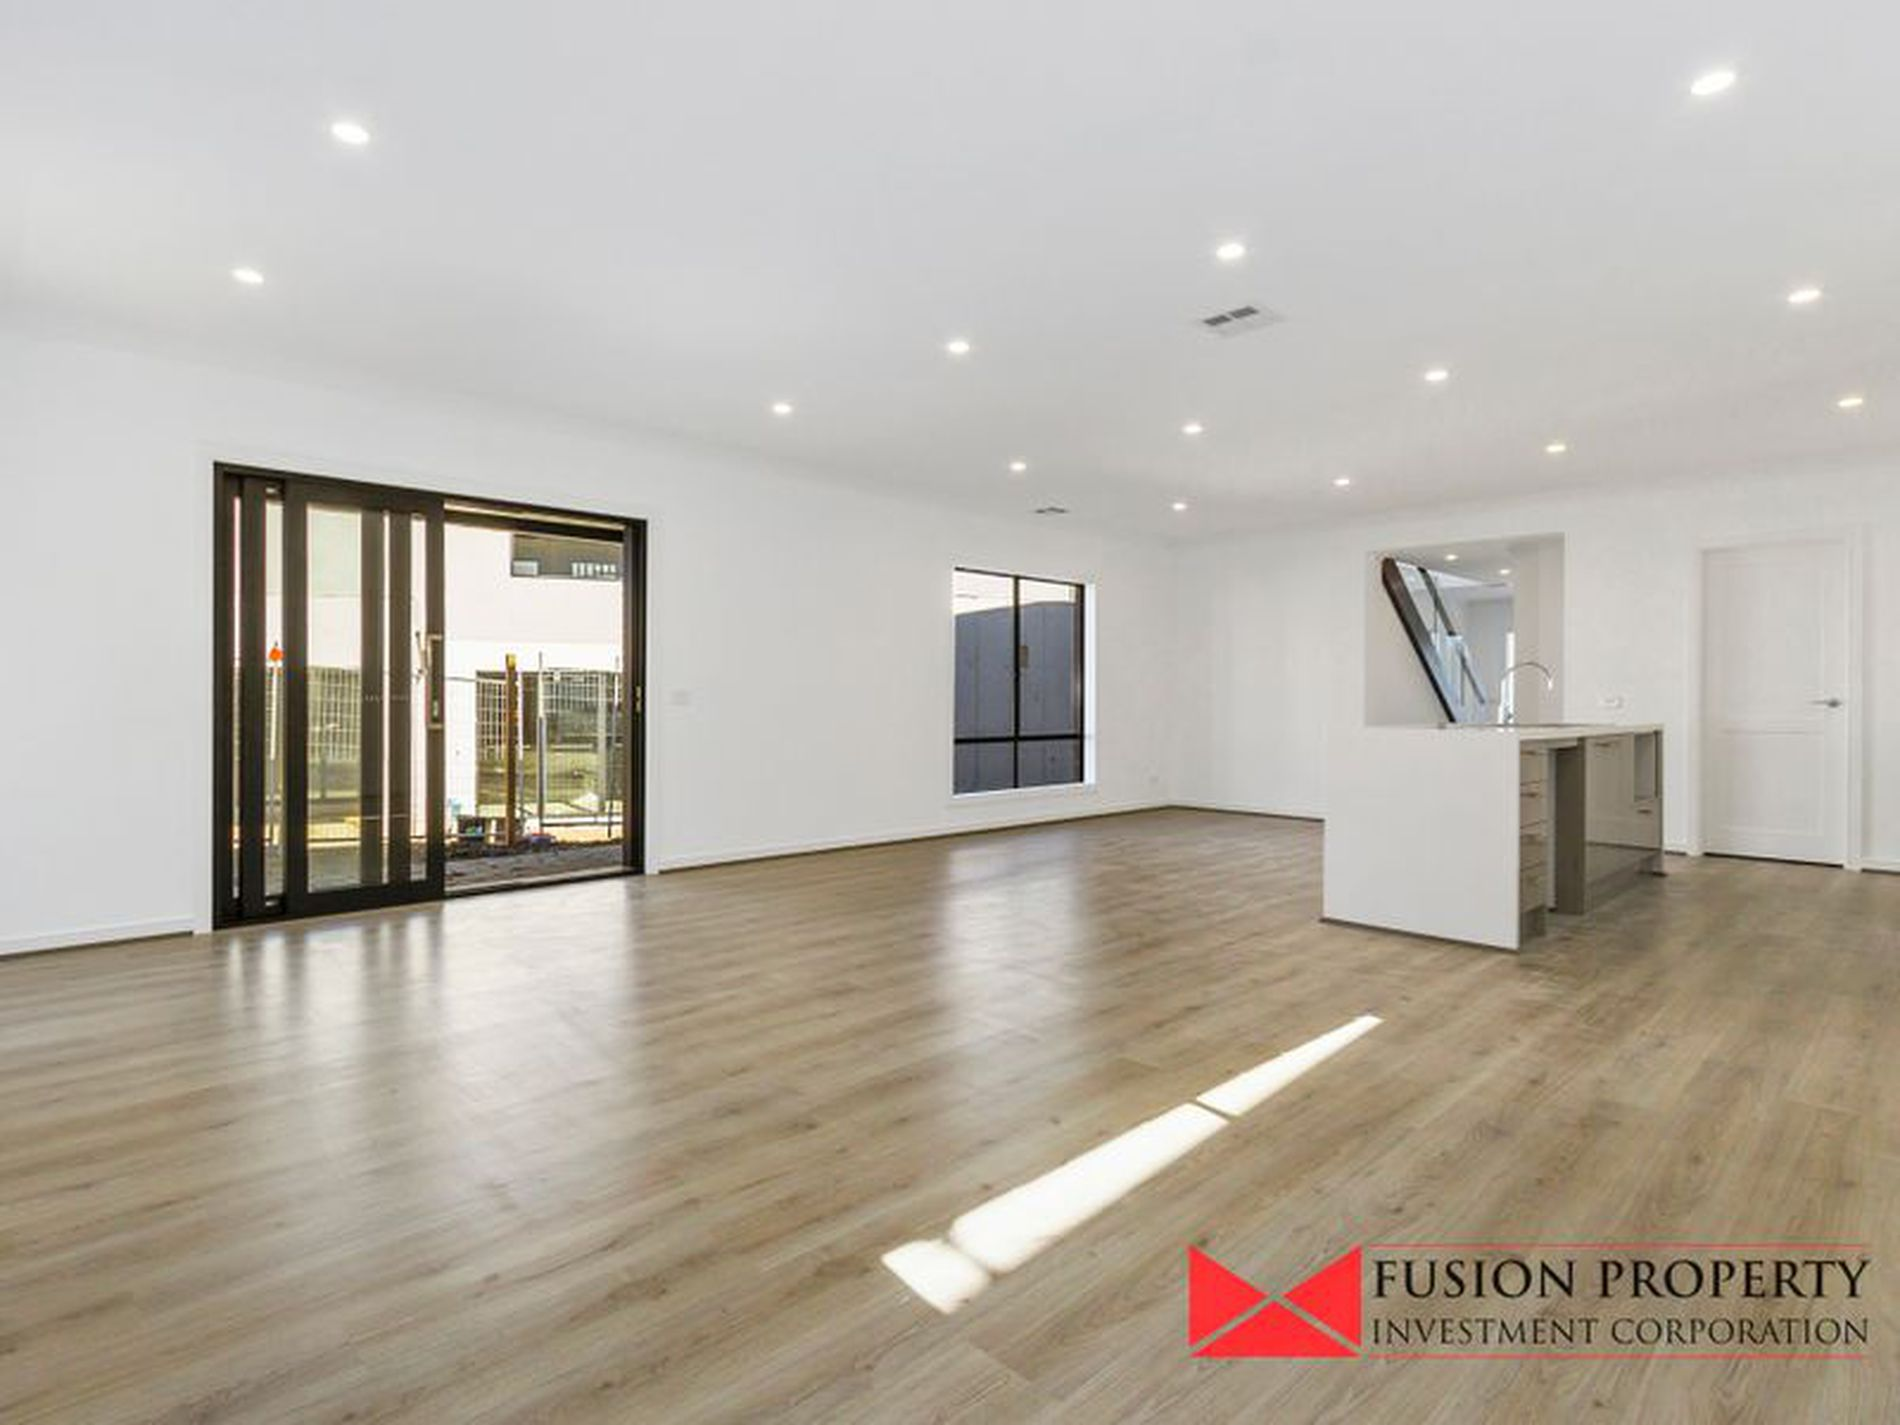 6 Foliage Way, Doncaster